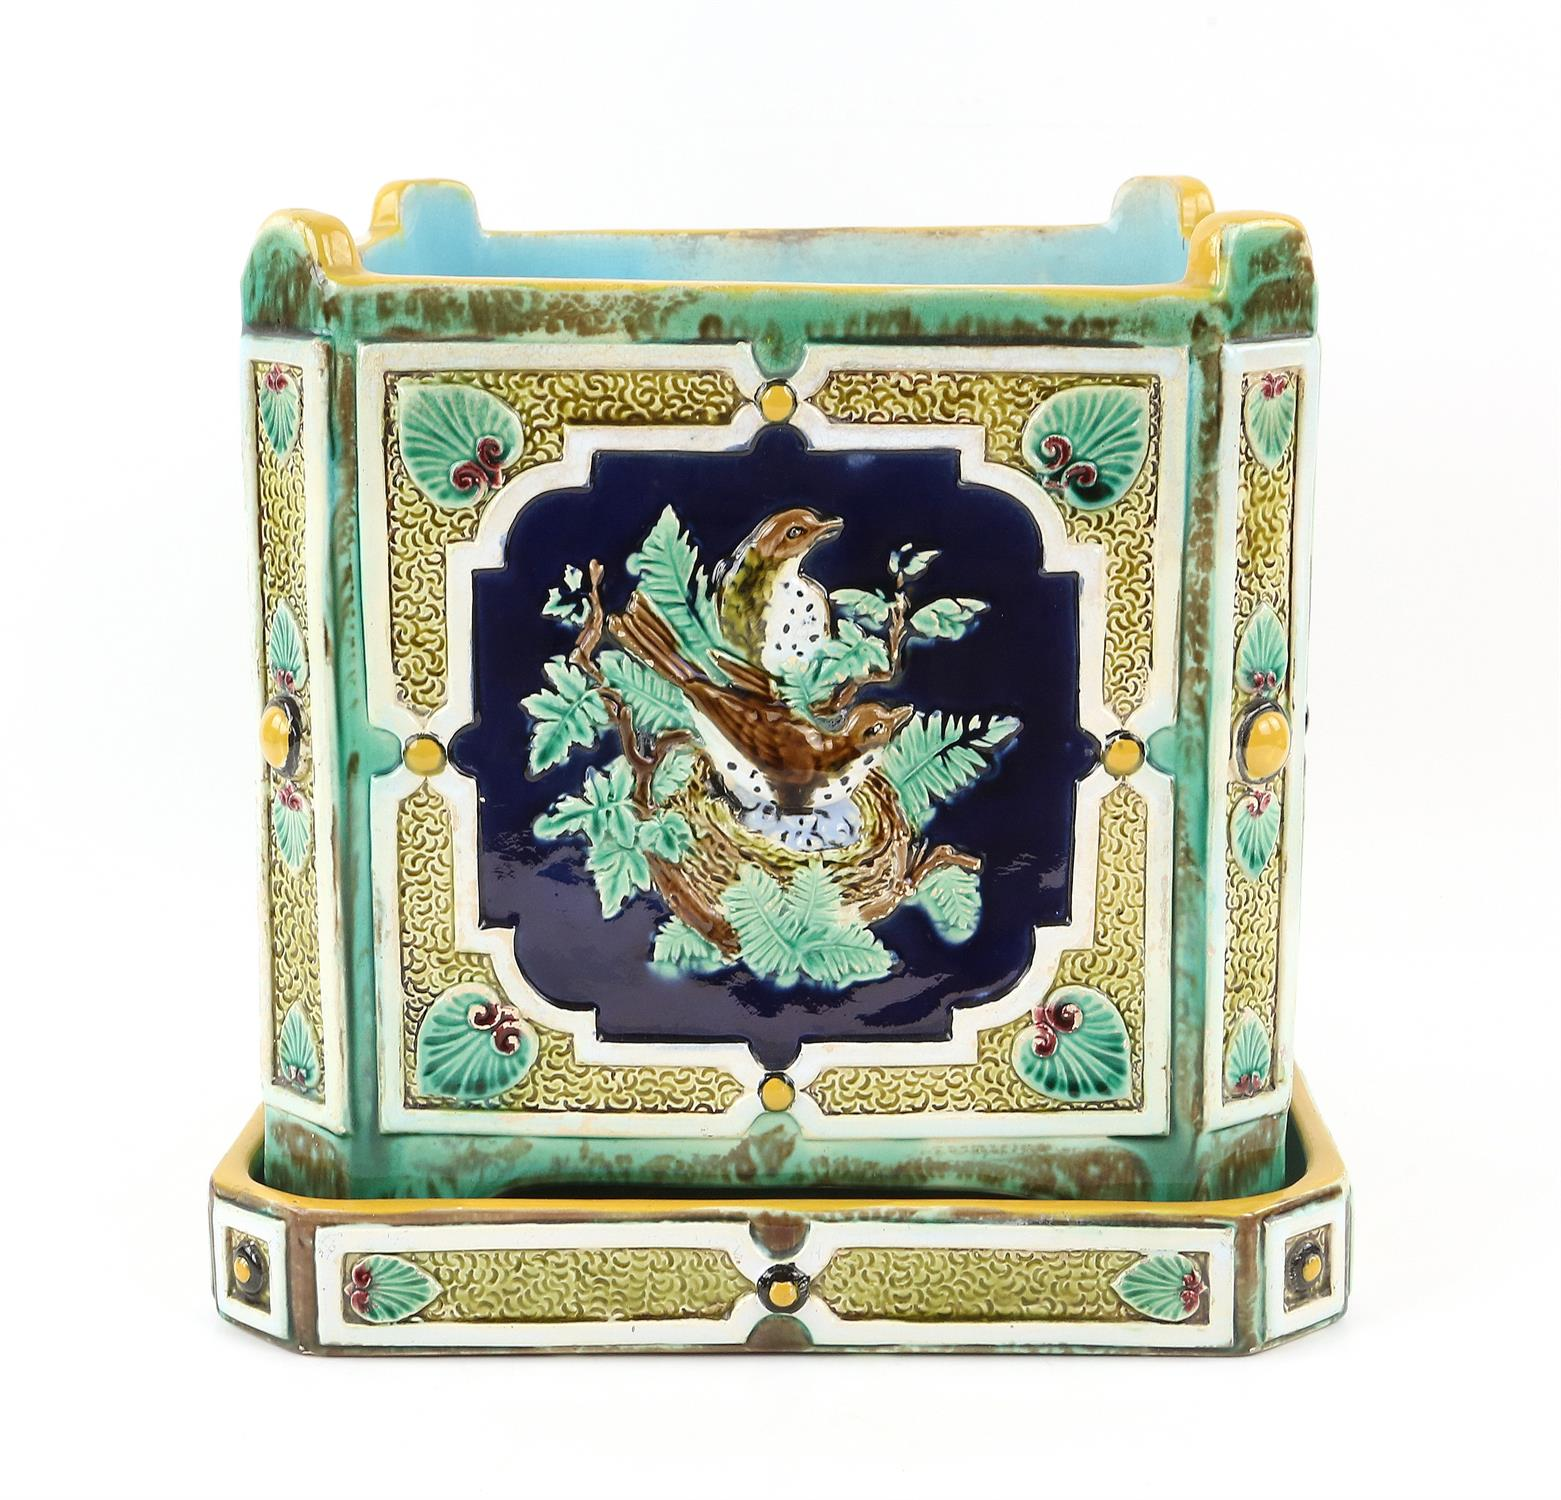 Minton style planter on stand, decorated with pairs of birds on nests. 22cm High, 21.5cm wide, 21.